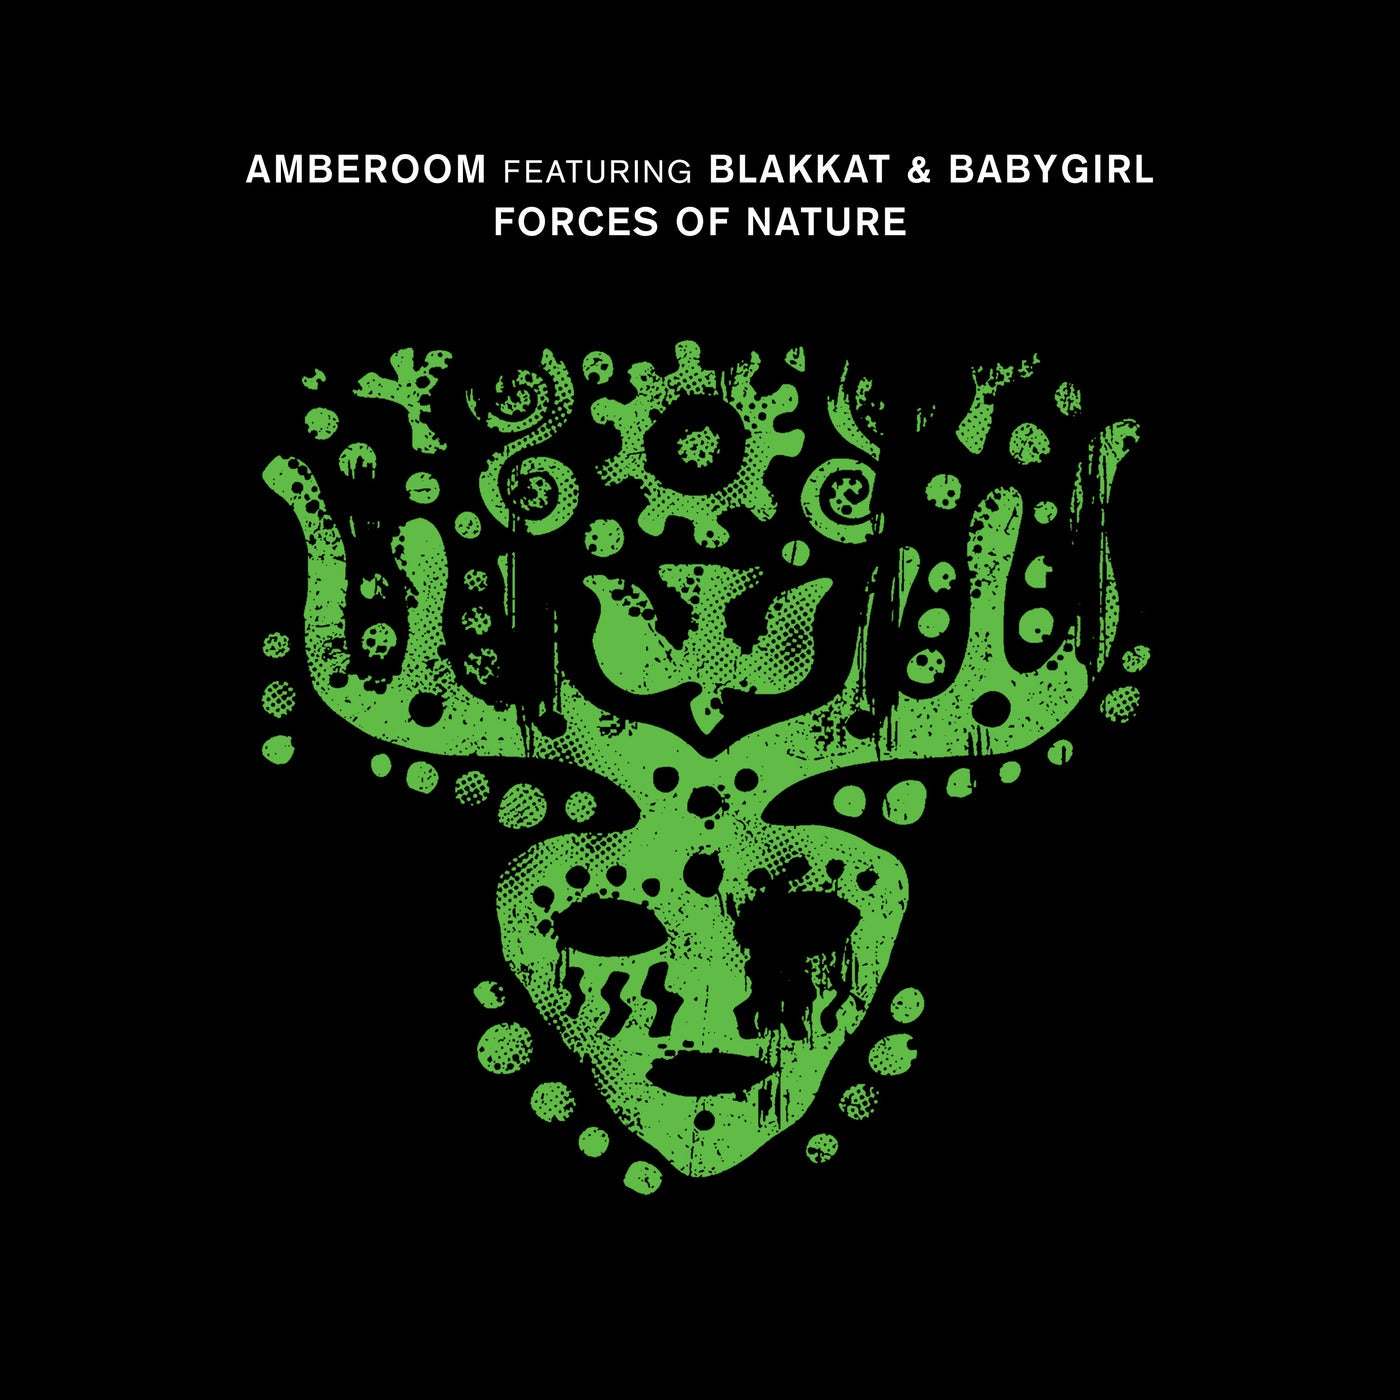 Forces Of Nature feat. Blakkat & BabyGirl (Radio Slave 'New Age Of Love' Remix Part I)